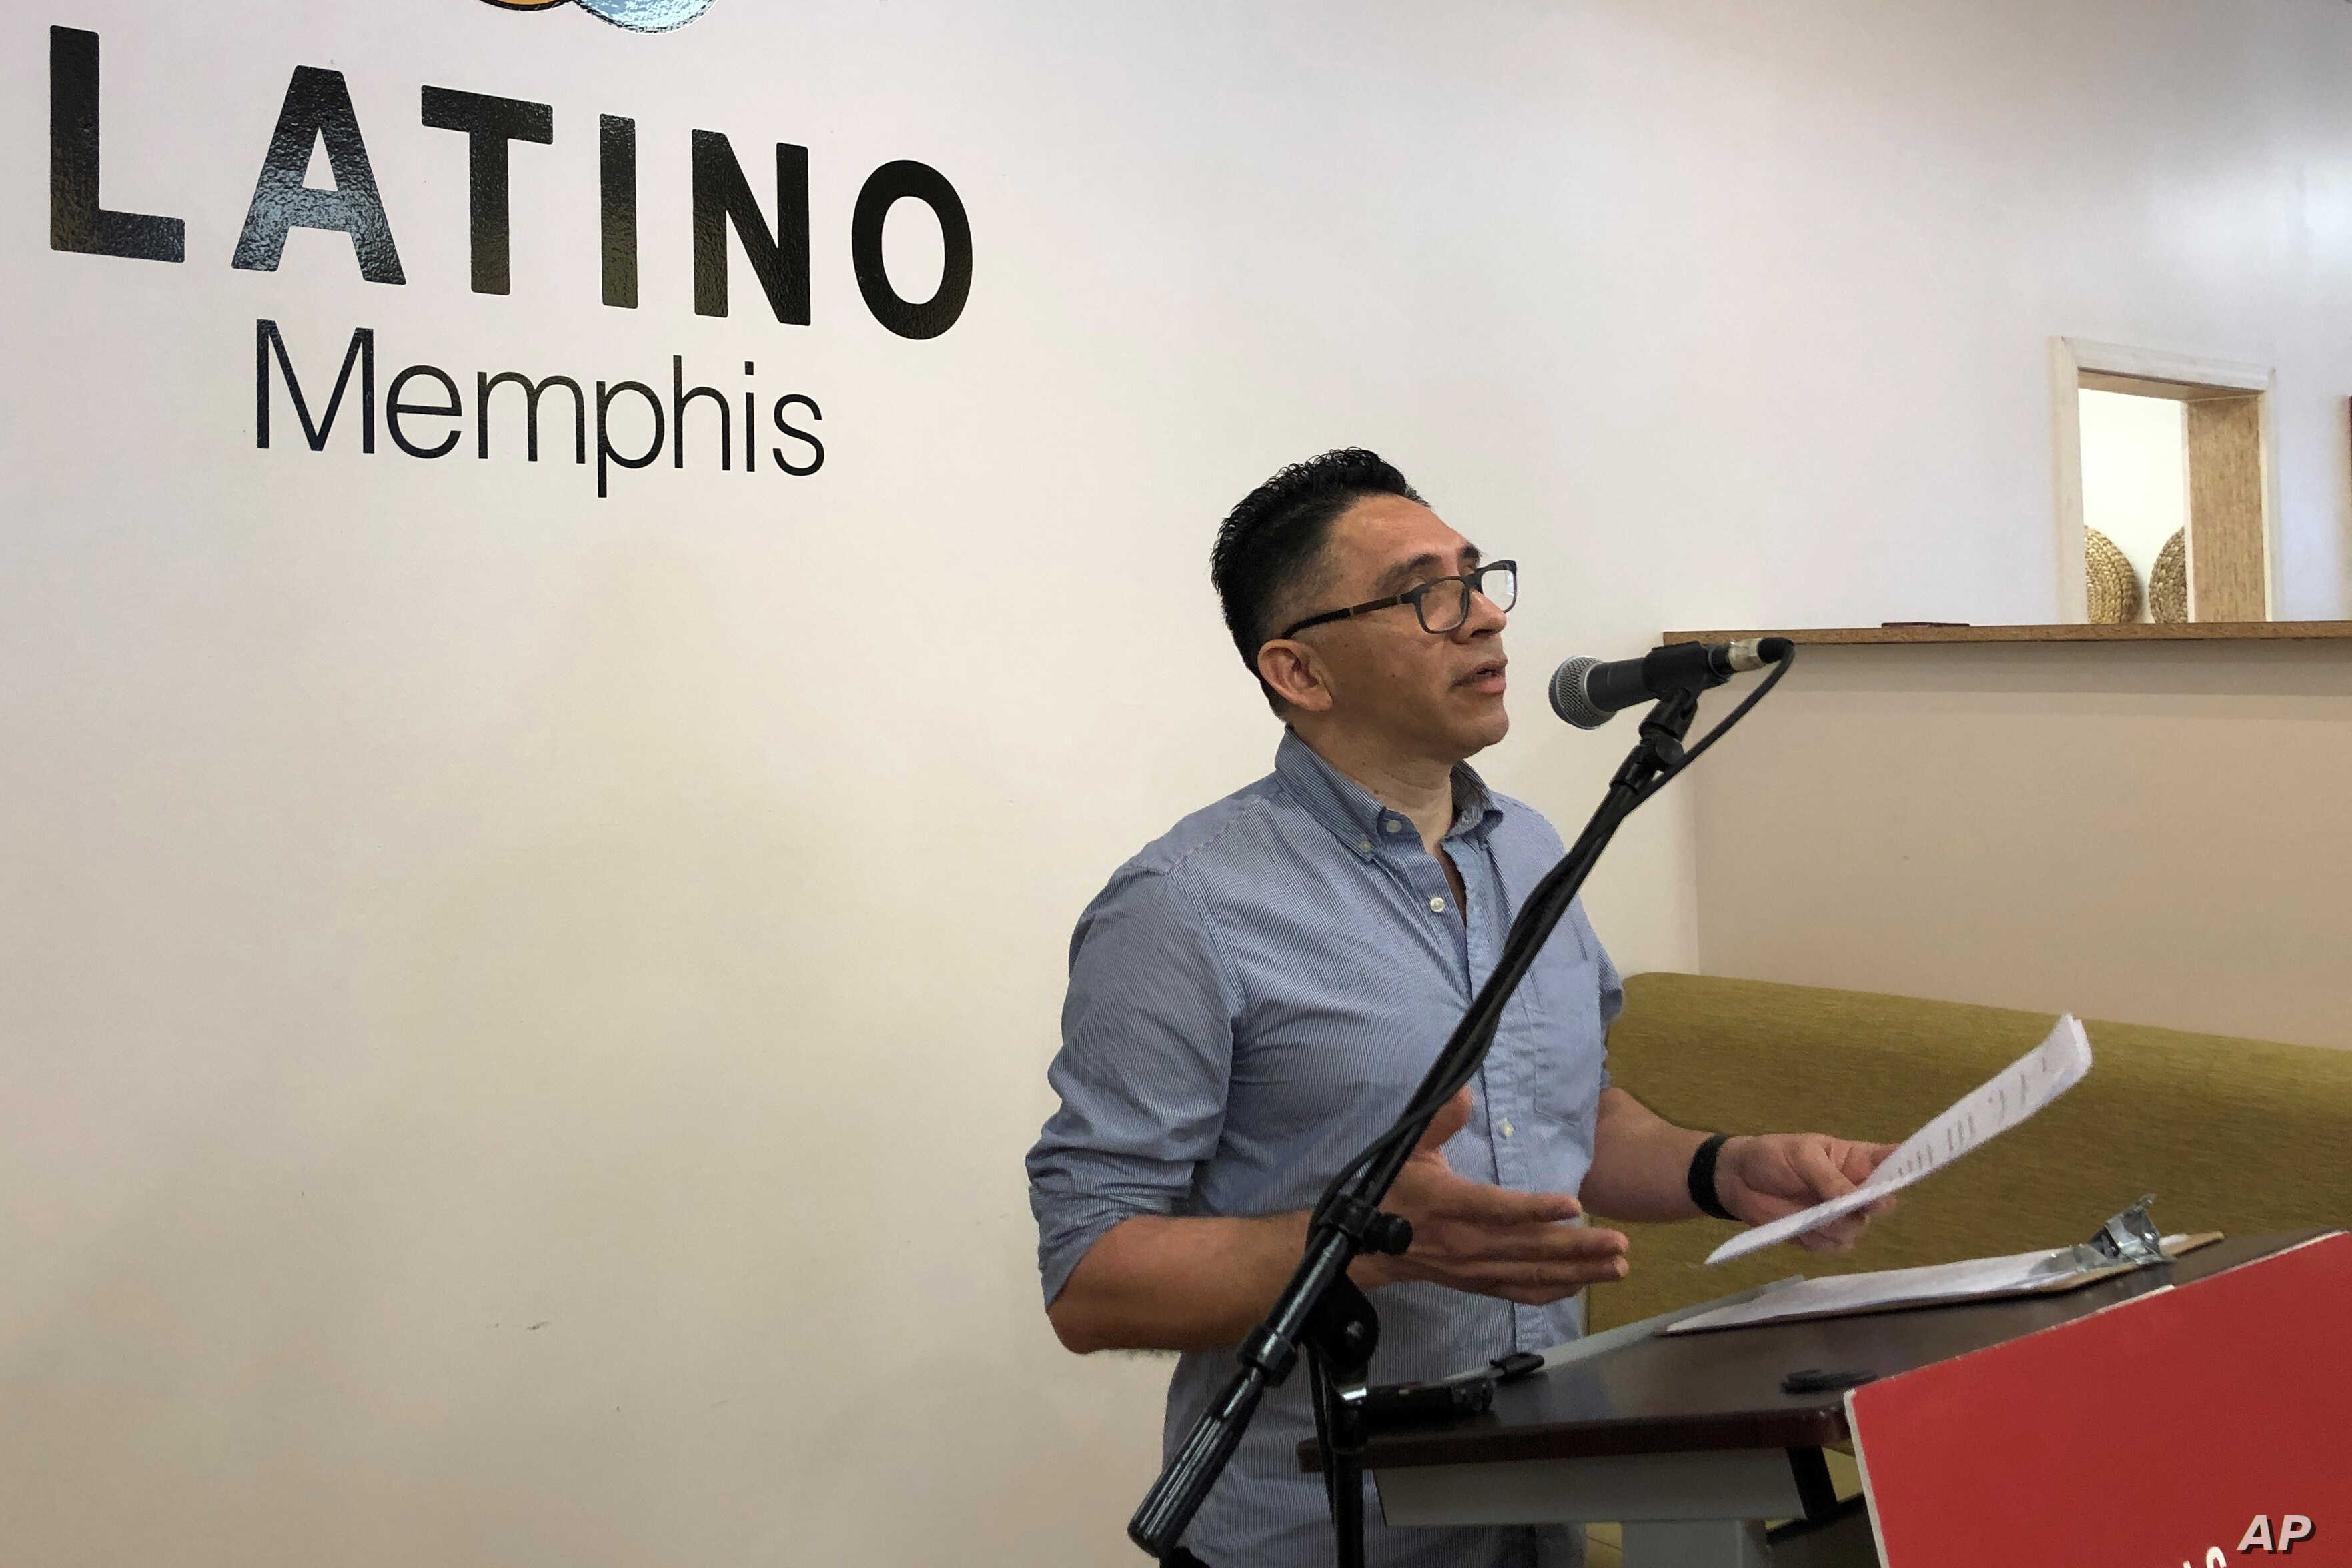 Spanish-language reporter Manuel Duran speaks during a news conference discussing the 15 months he spent at U.S. immigration detention facilities on Wednesday, July 17, 2019 in Memphis, Tenn. The native of El Salvador was released from immigration…